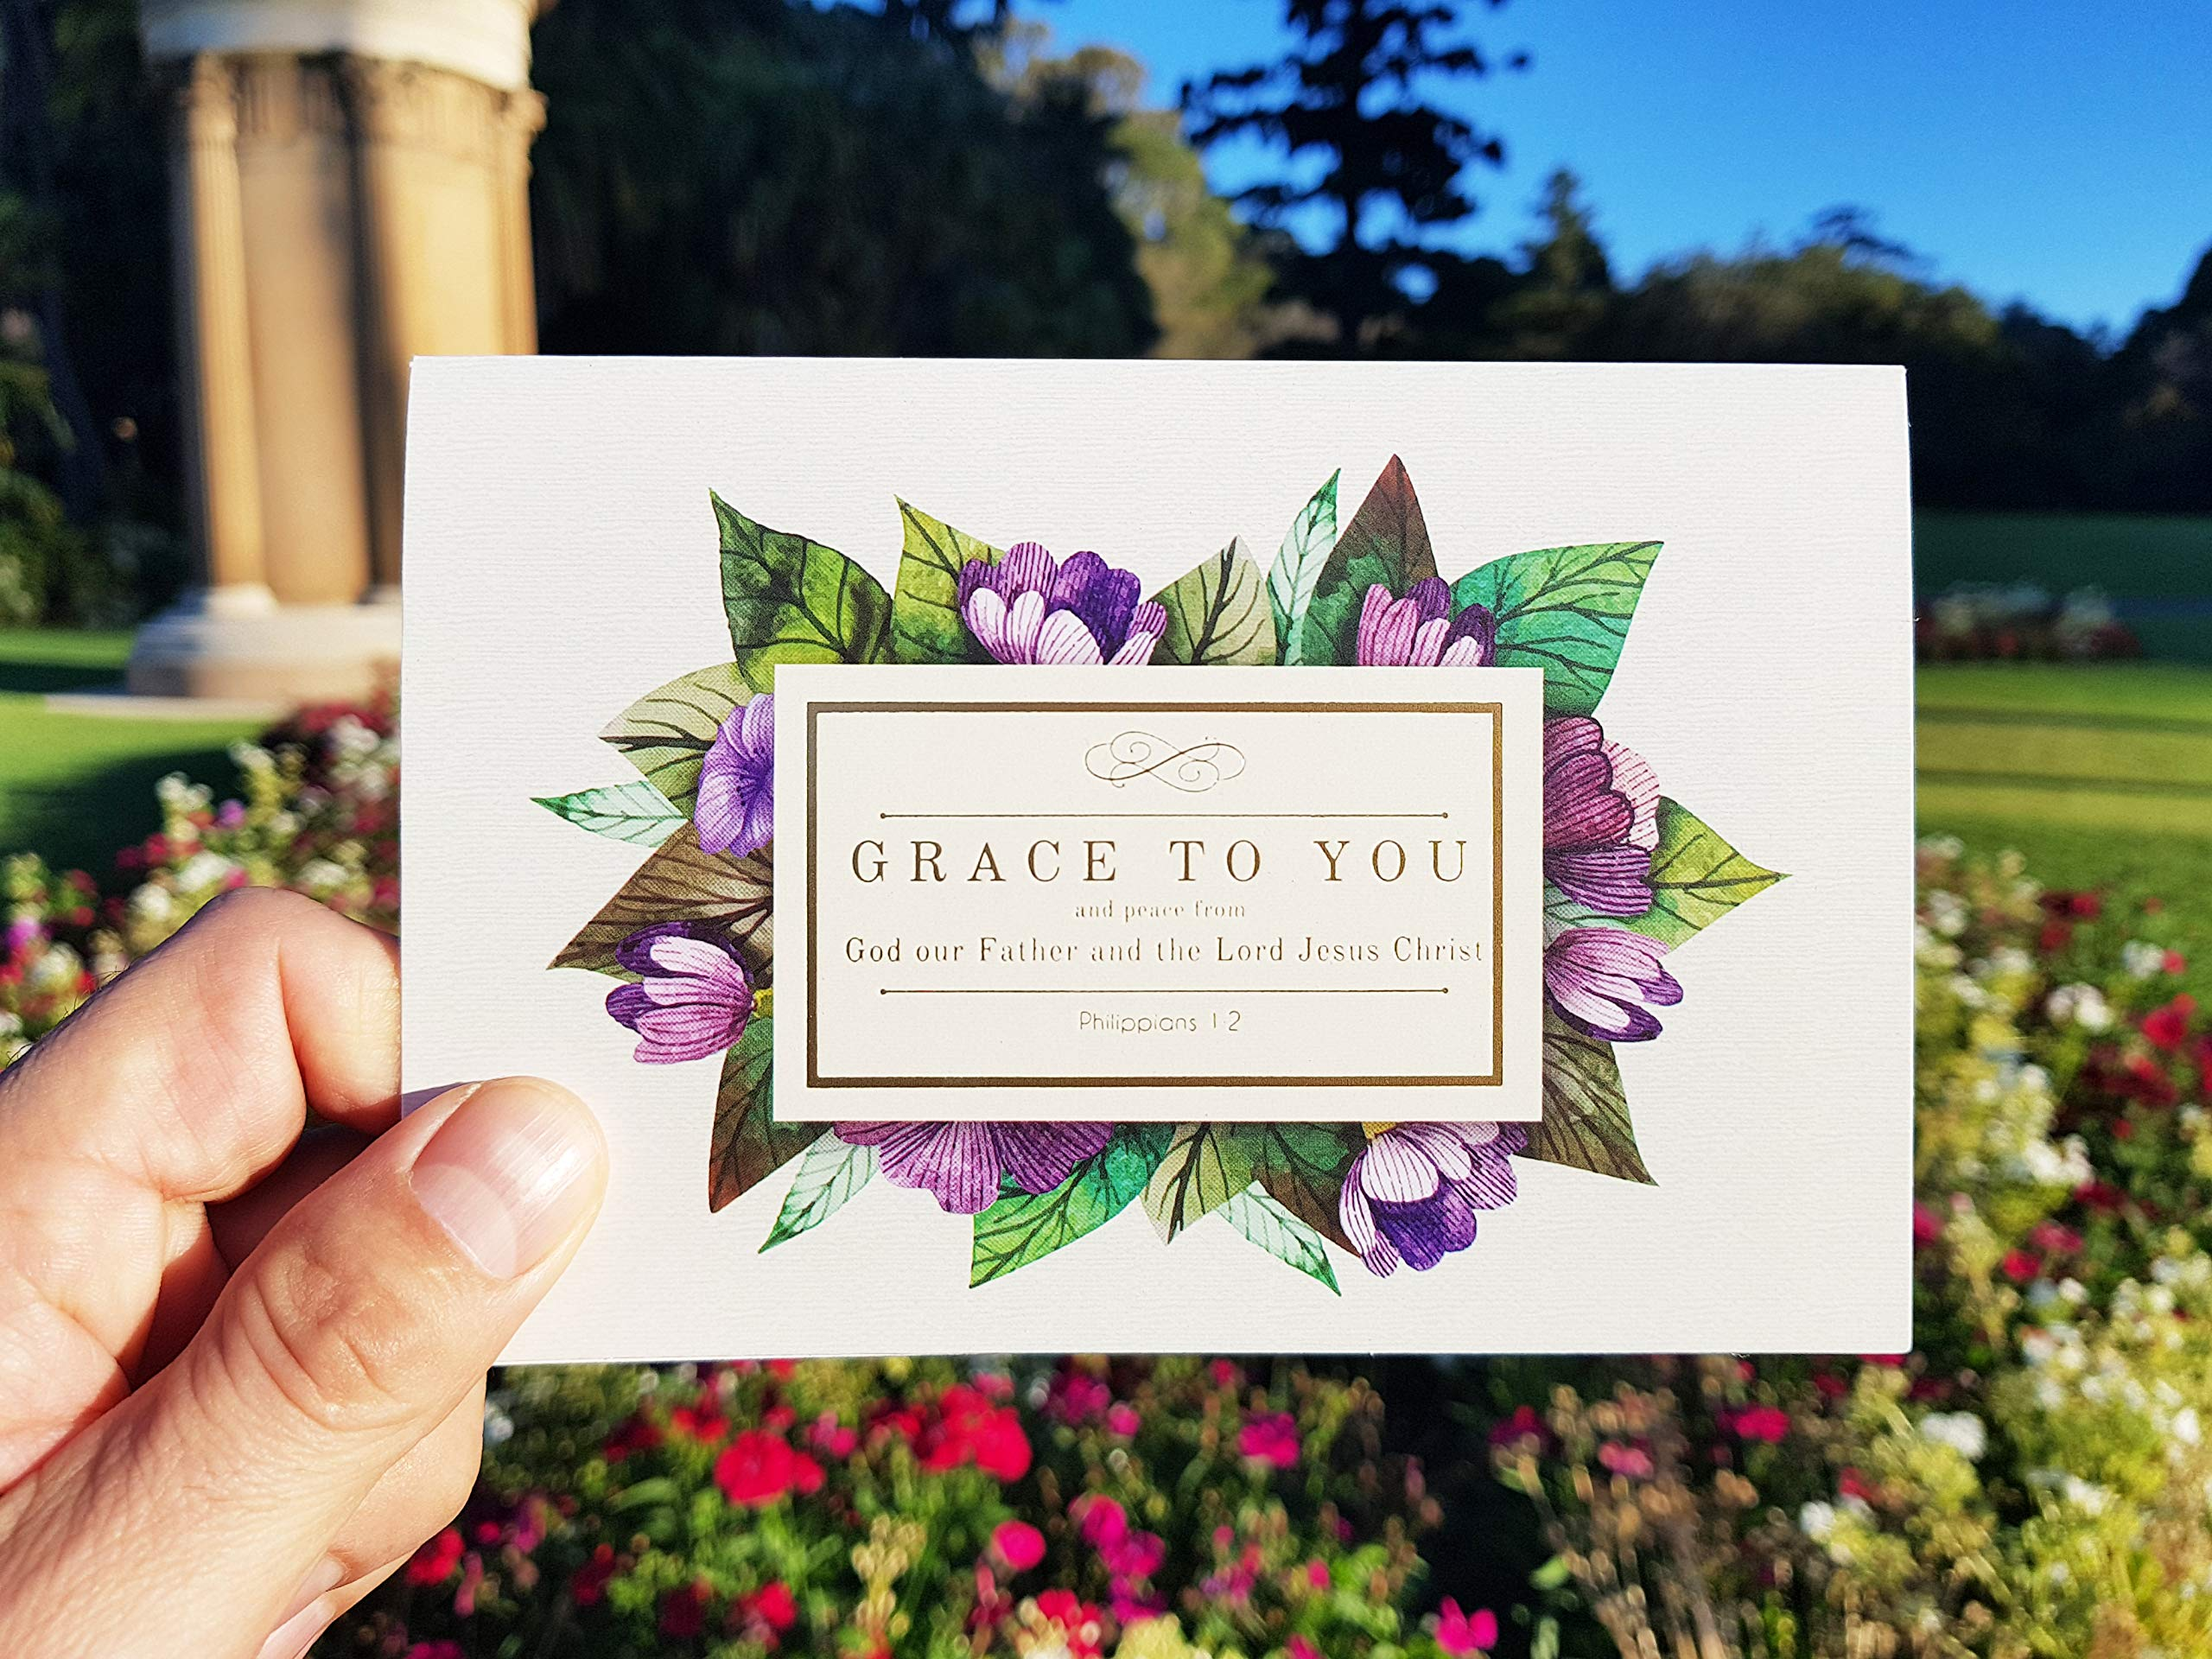 Gold foil Christian Thank You Cards with bible verses | 50 assorted 4x6 Inspirational Note Cards | Boxed Bulk ideal for Communion and Wedding | Religious Spiritual Scripture by Sleek Cards (Image #4)